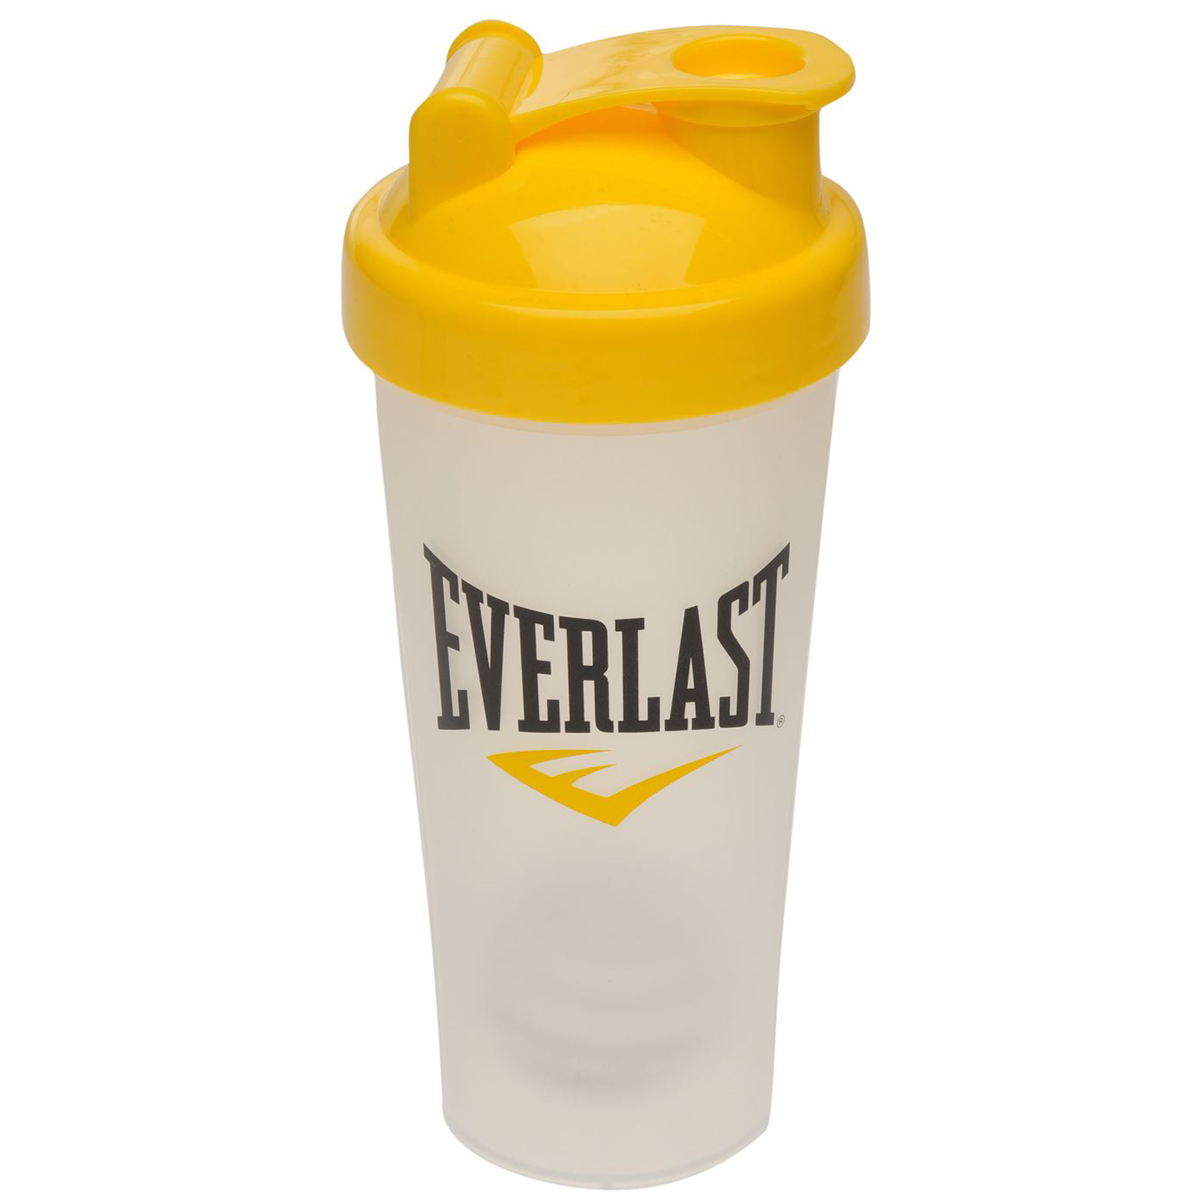 Everlast Vintage Shaker Water Bottle - Yellow, ONESIZE